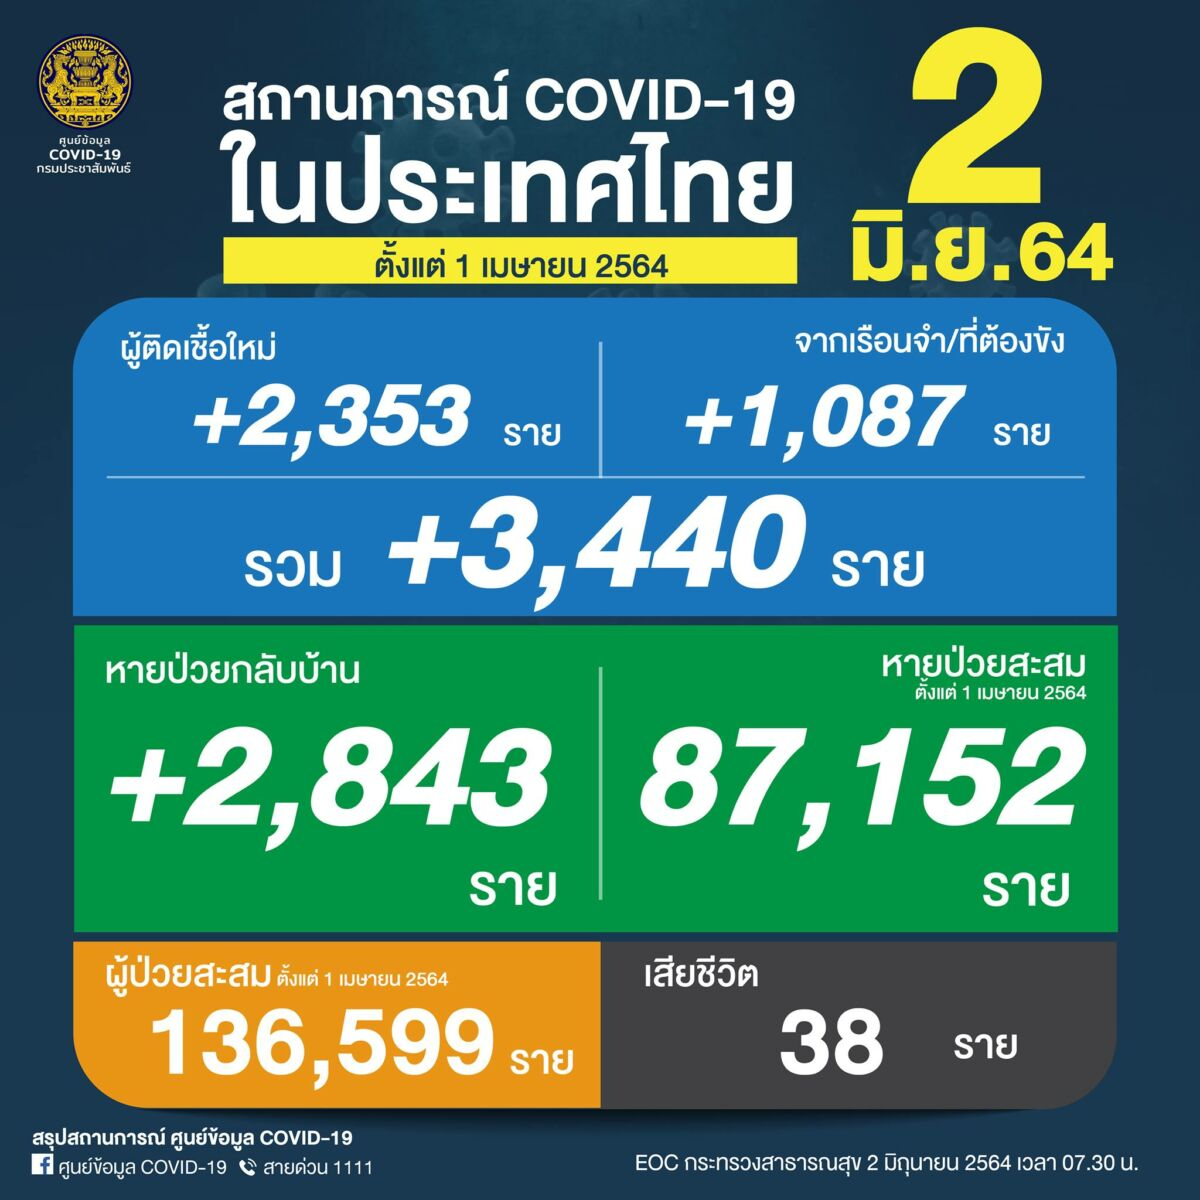 Wednesday Covid Update: 3,440 new cases and 38 deaths | News by Thaiger